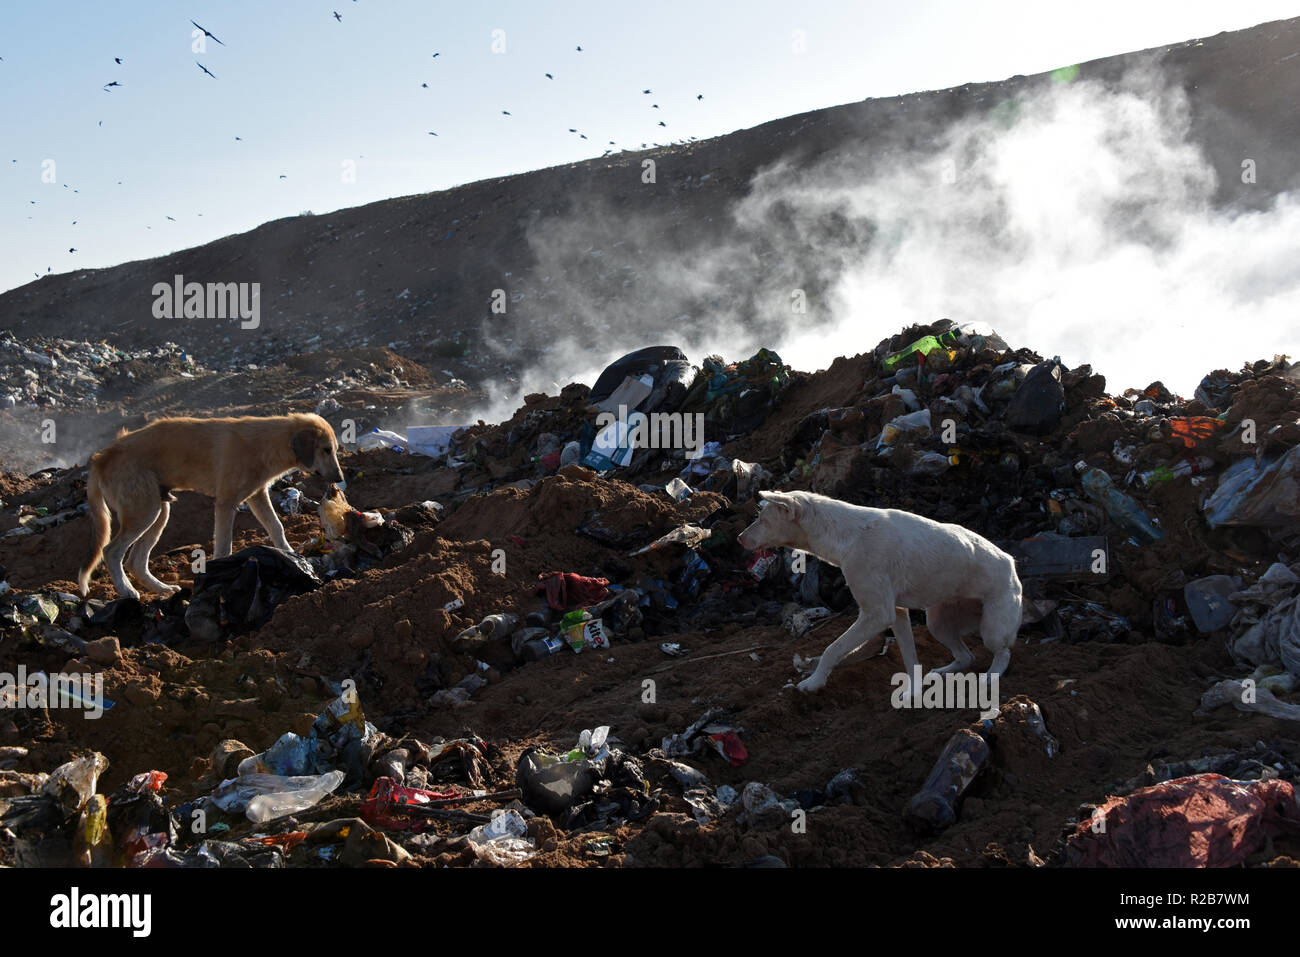 The town dump is on fire in the Astrakhan, Russia - Stock Image